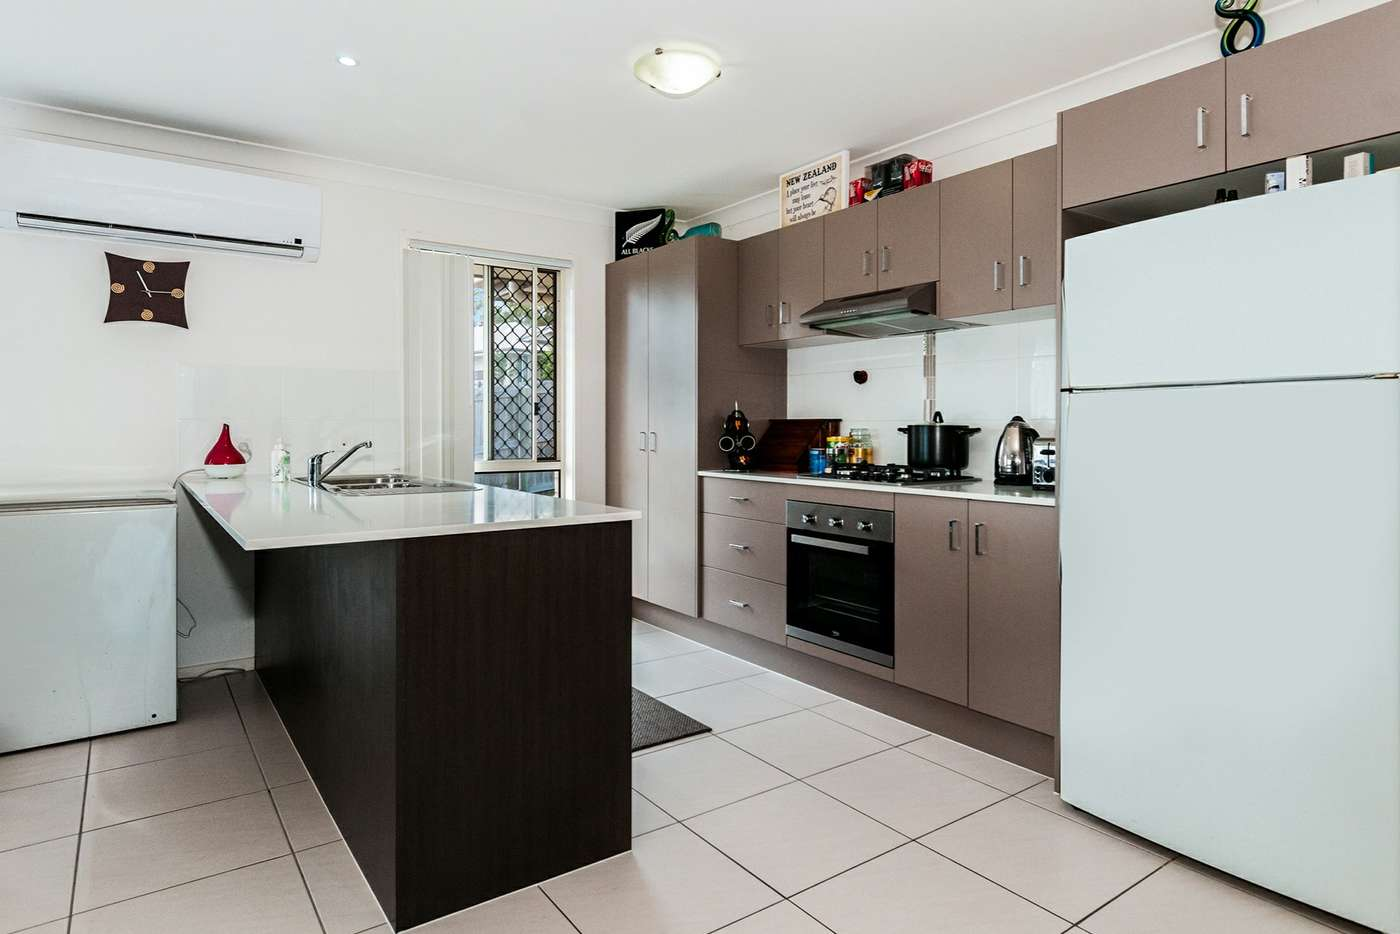 Seventh view of Homely house listing, 44 Nova St, Waterford QLD 4133